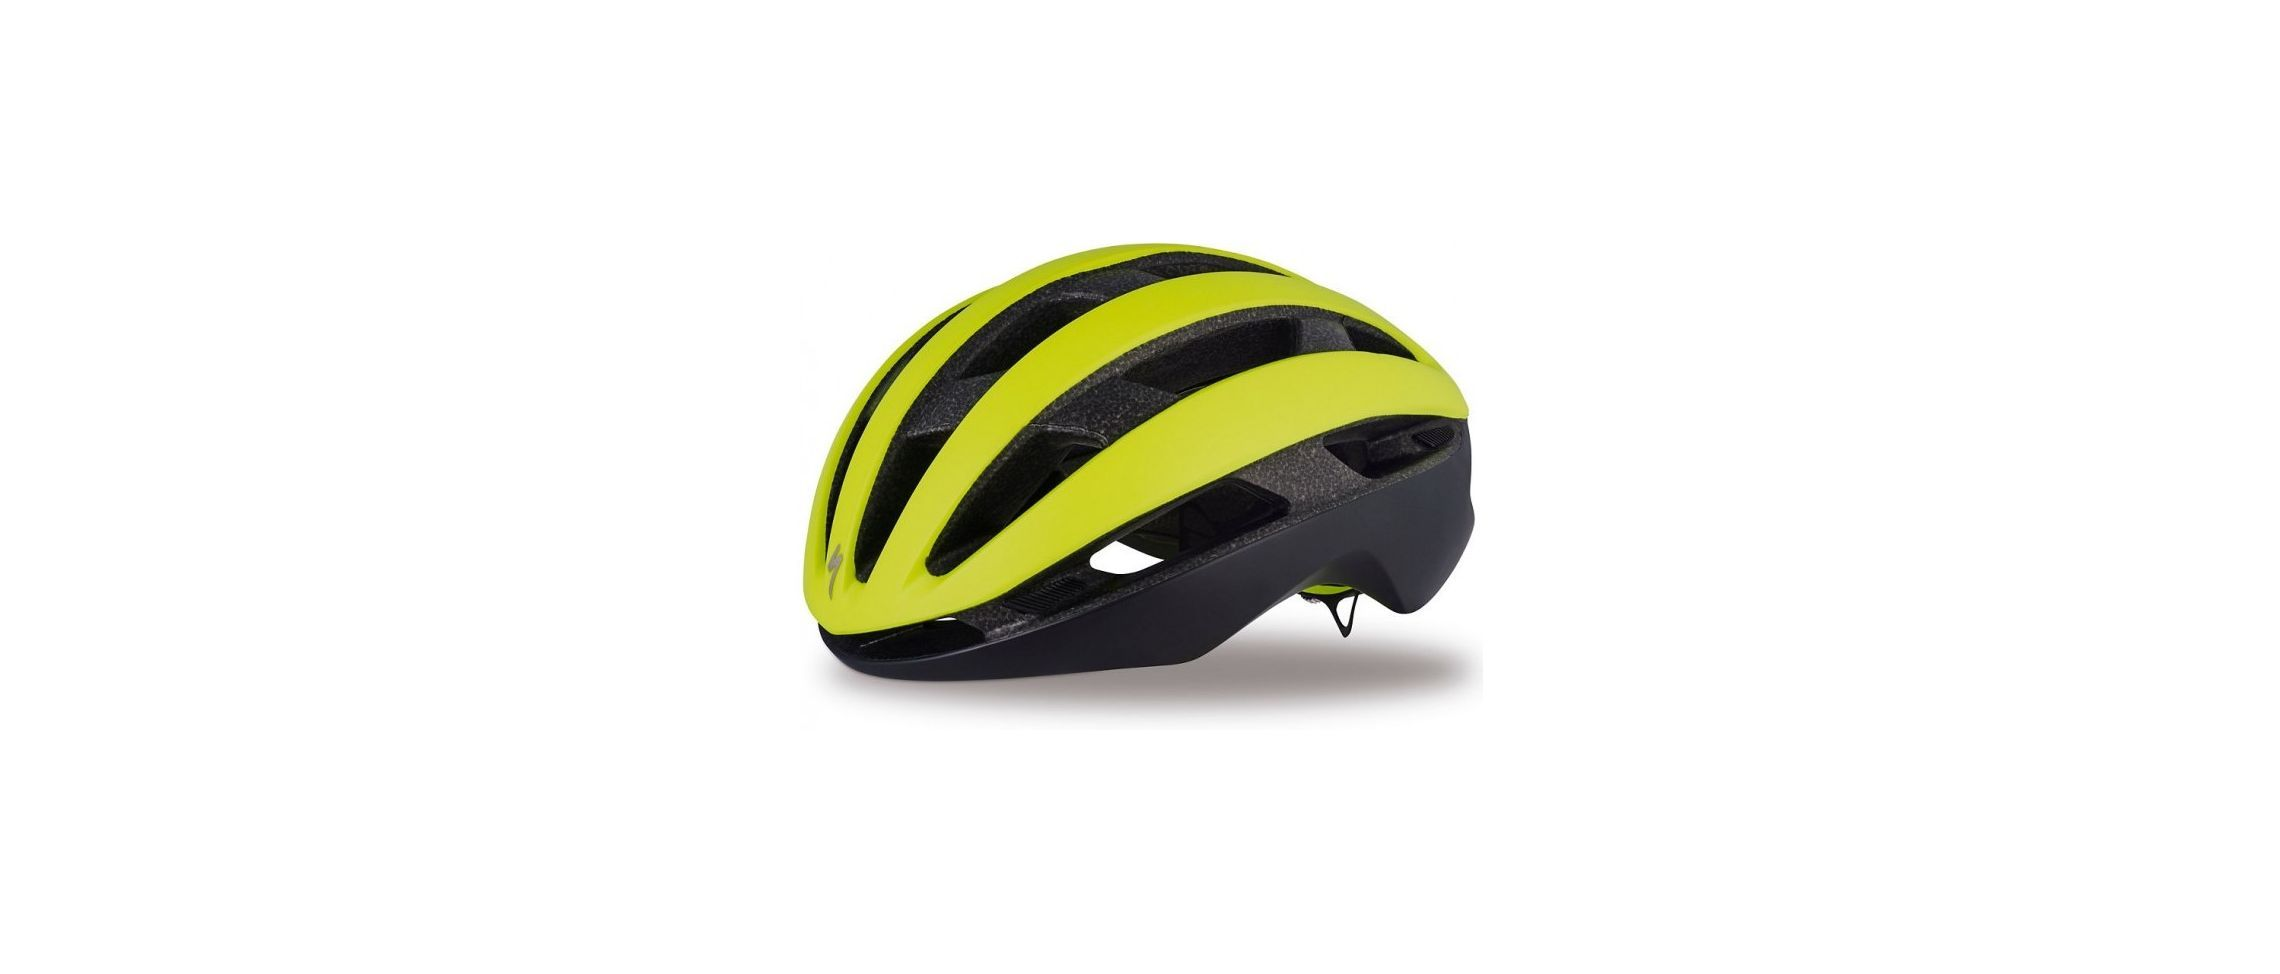 Airnet Casco Ciclismo Carretera Specialized Safety Ion/Black 1 IBKBike.es